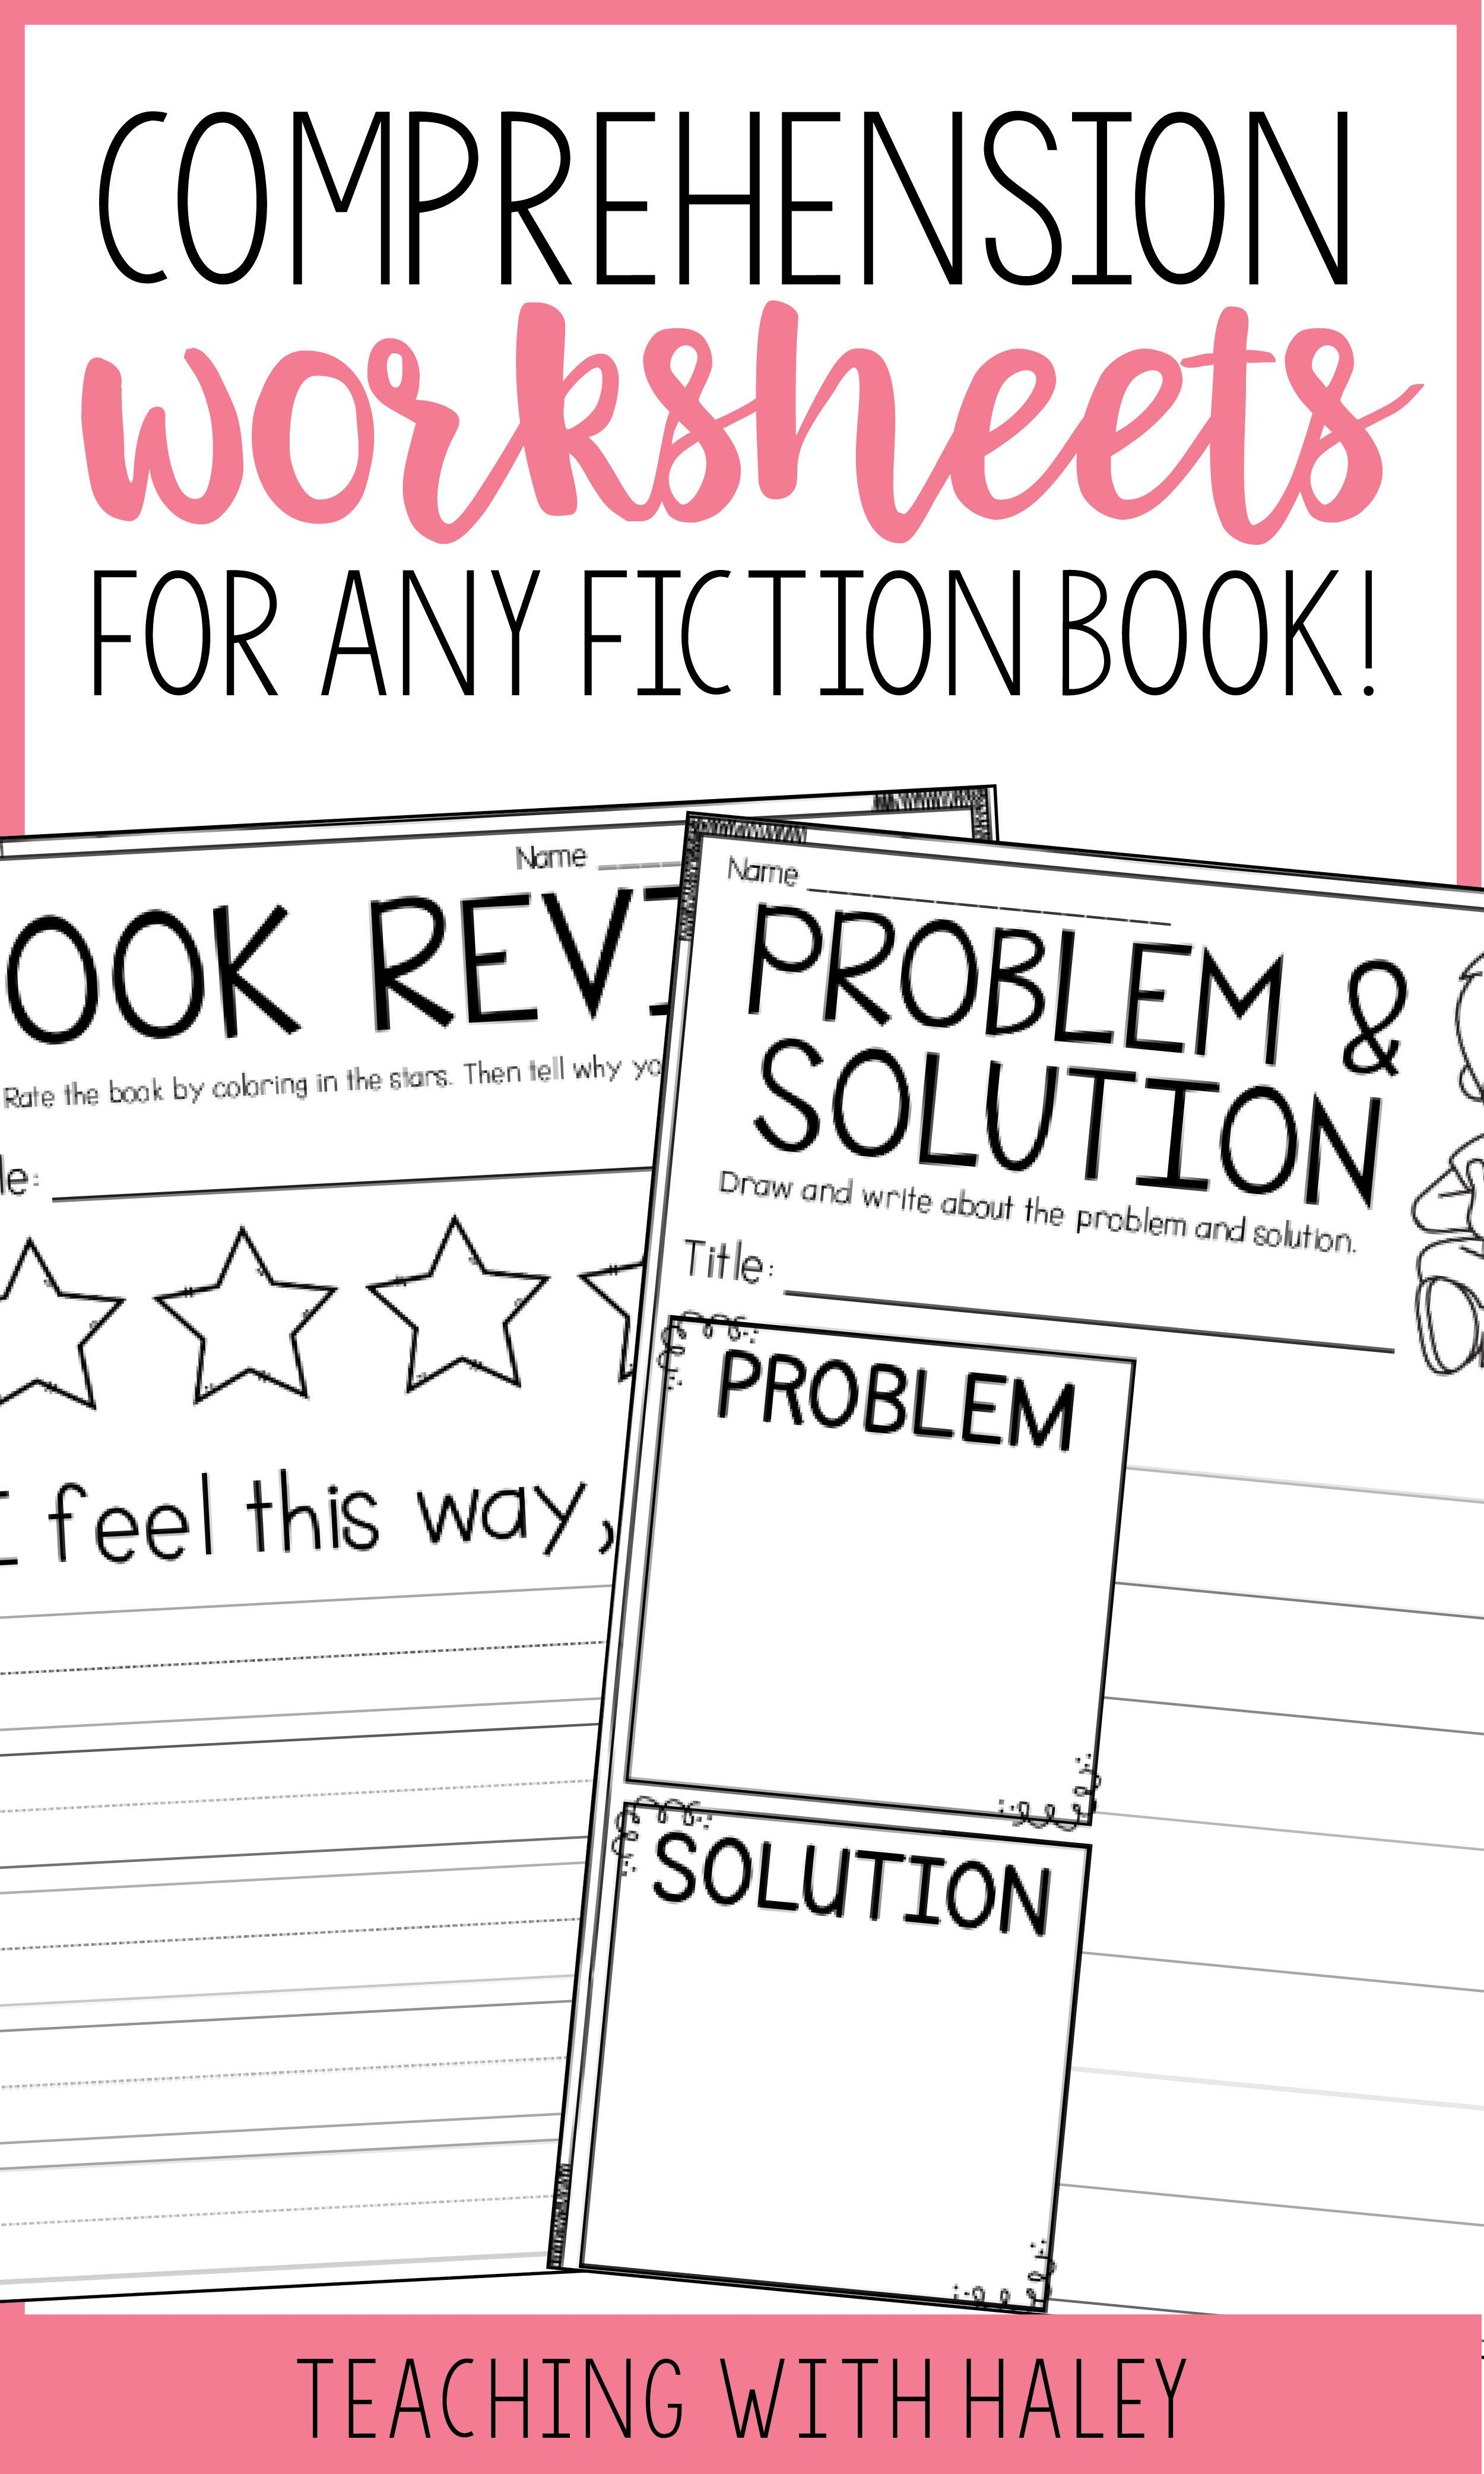 Comprehension Pages For Any Fiction Book In